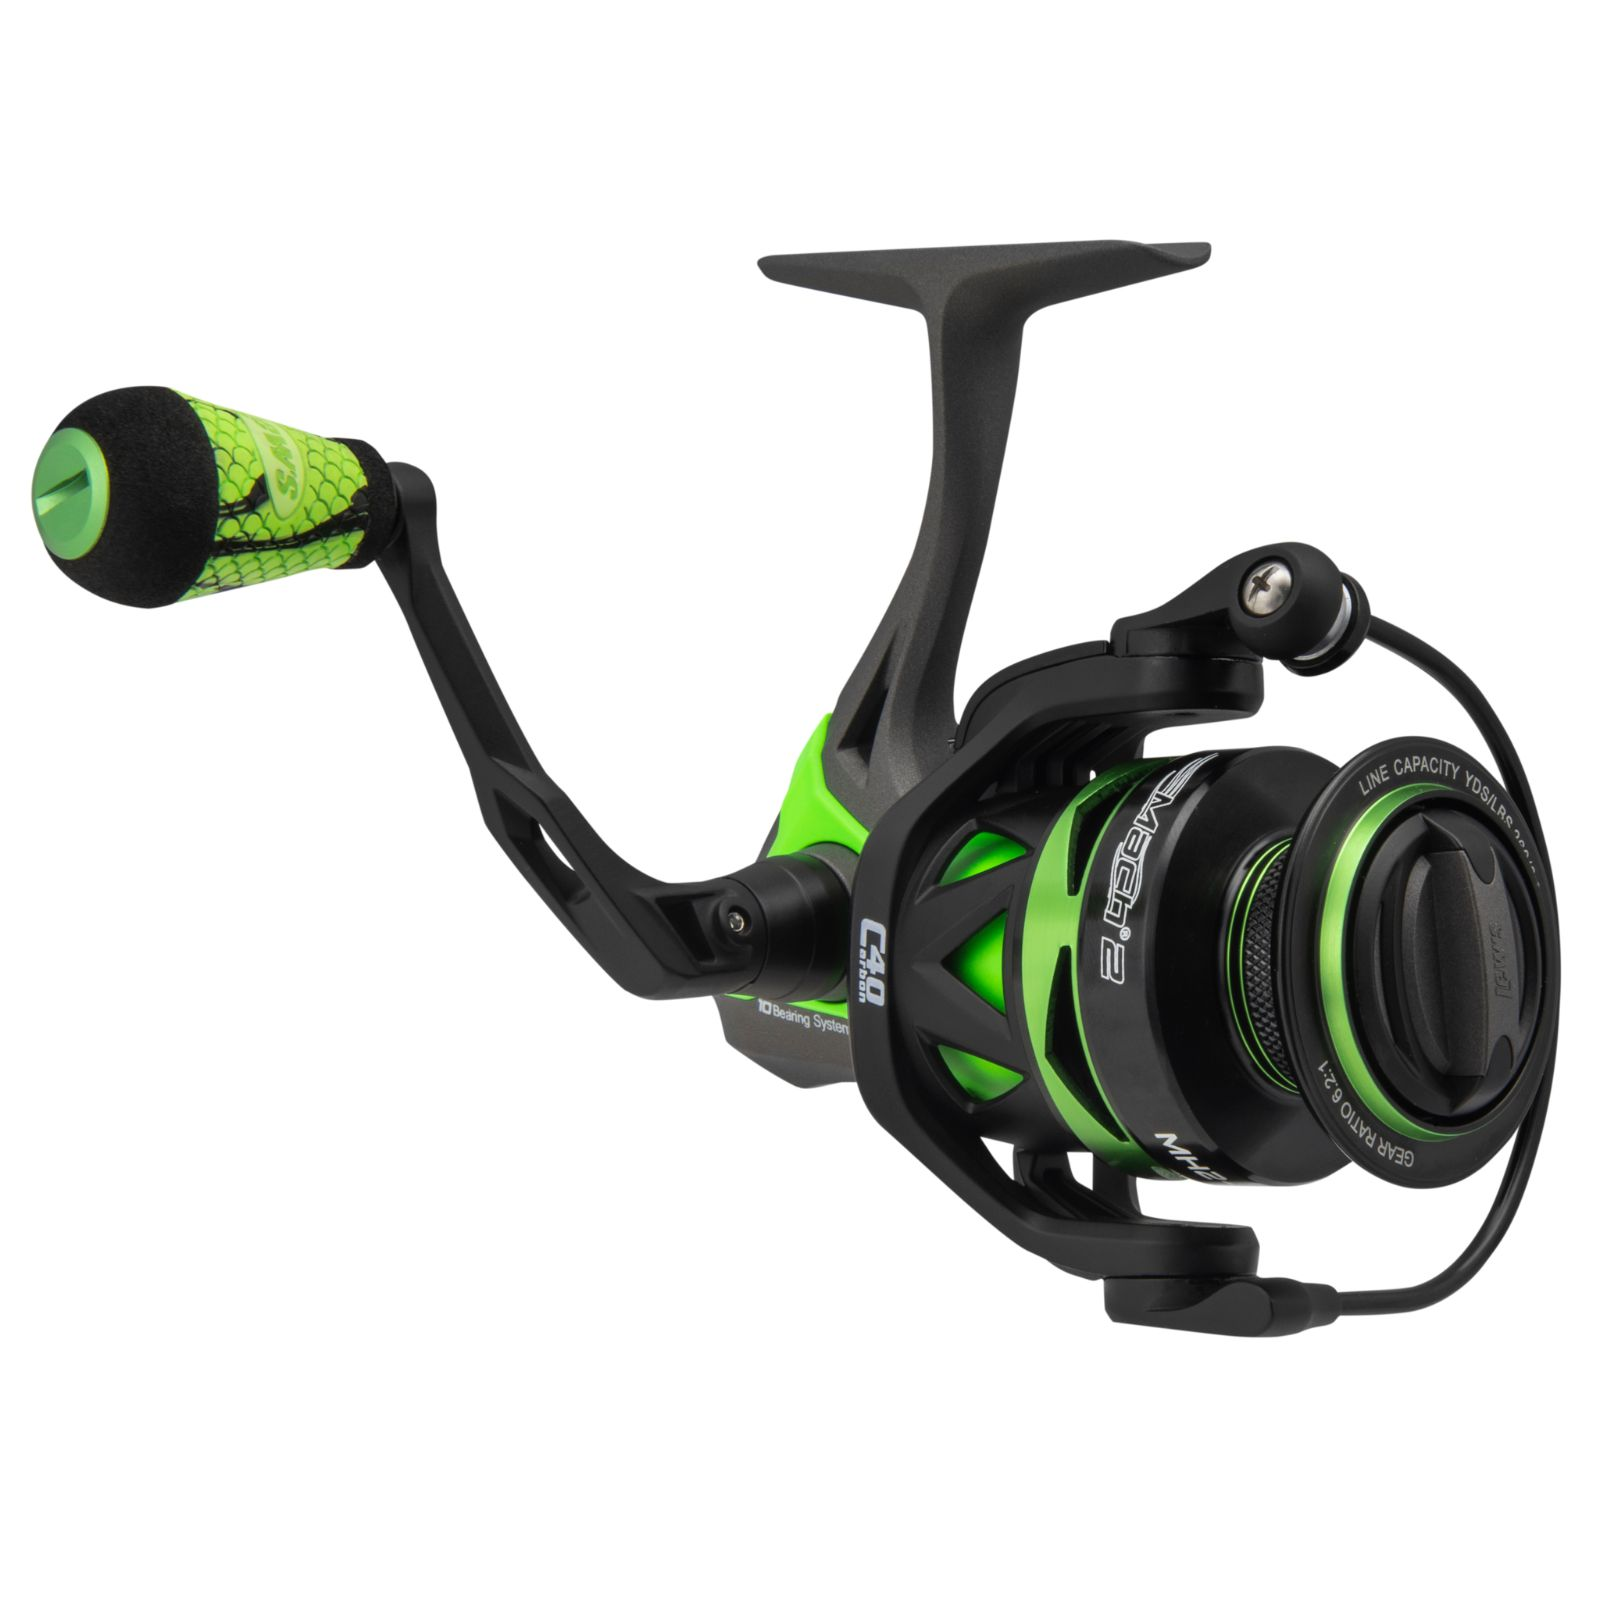 Lews MH2-300A Mach 2 Speed Spin Reel 6.2:2